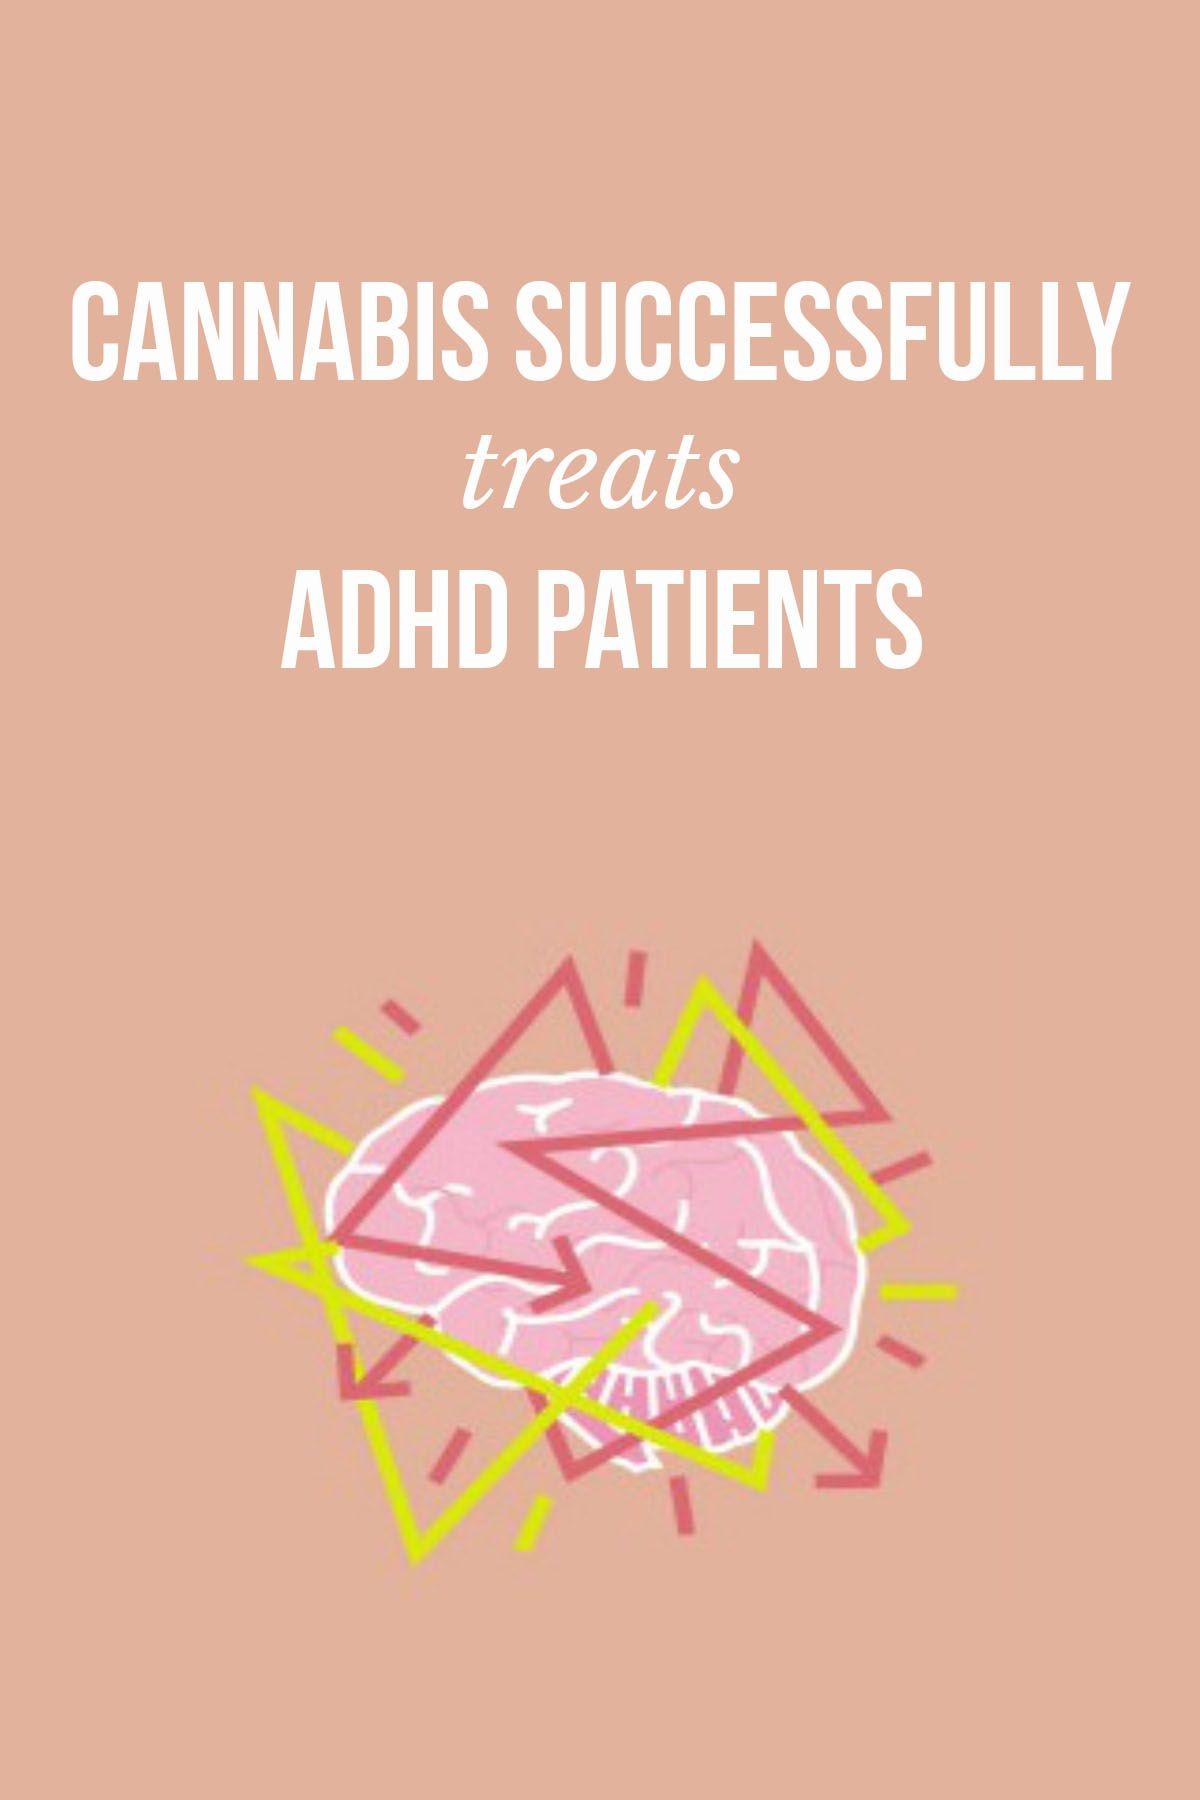 cannabis successfully treats adhd patients! | blog.massroots